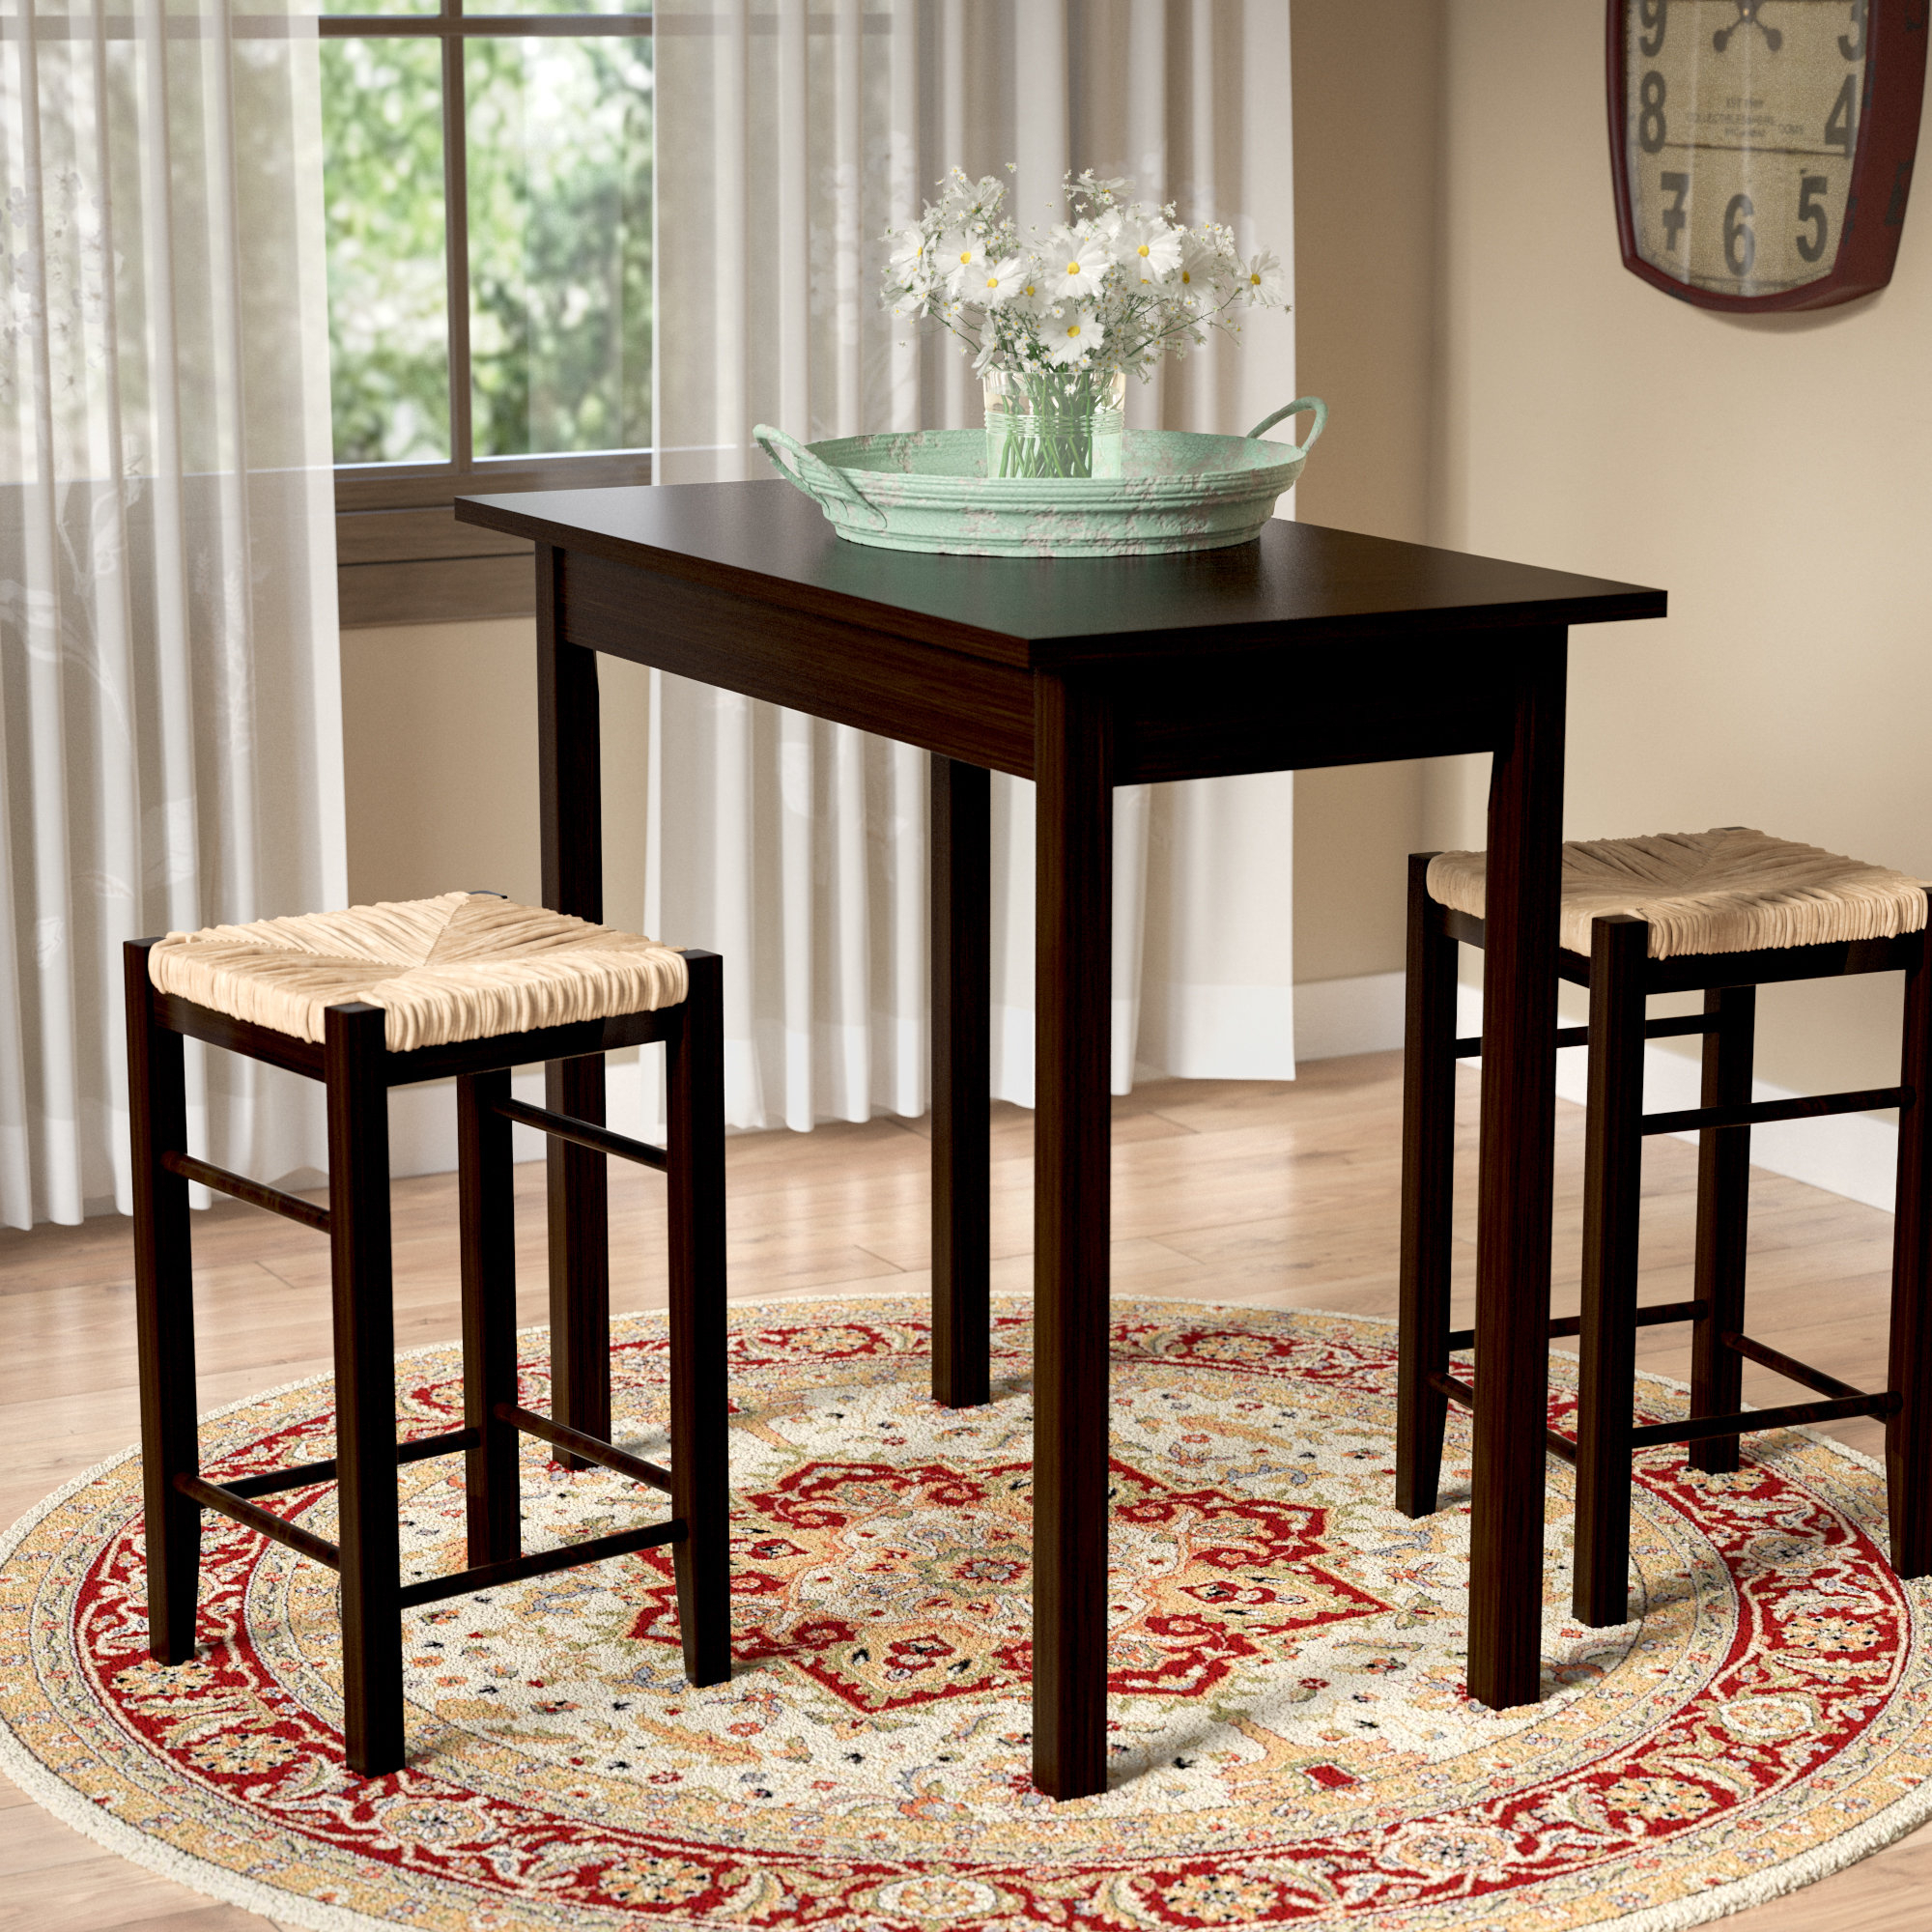 August Grove Tenney 3 Piece Counter Height Dining Set & Reviews For Most Popular Kinsler 3 Piece Bistro Sets (Image 1 of 20)